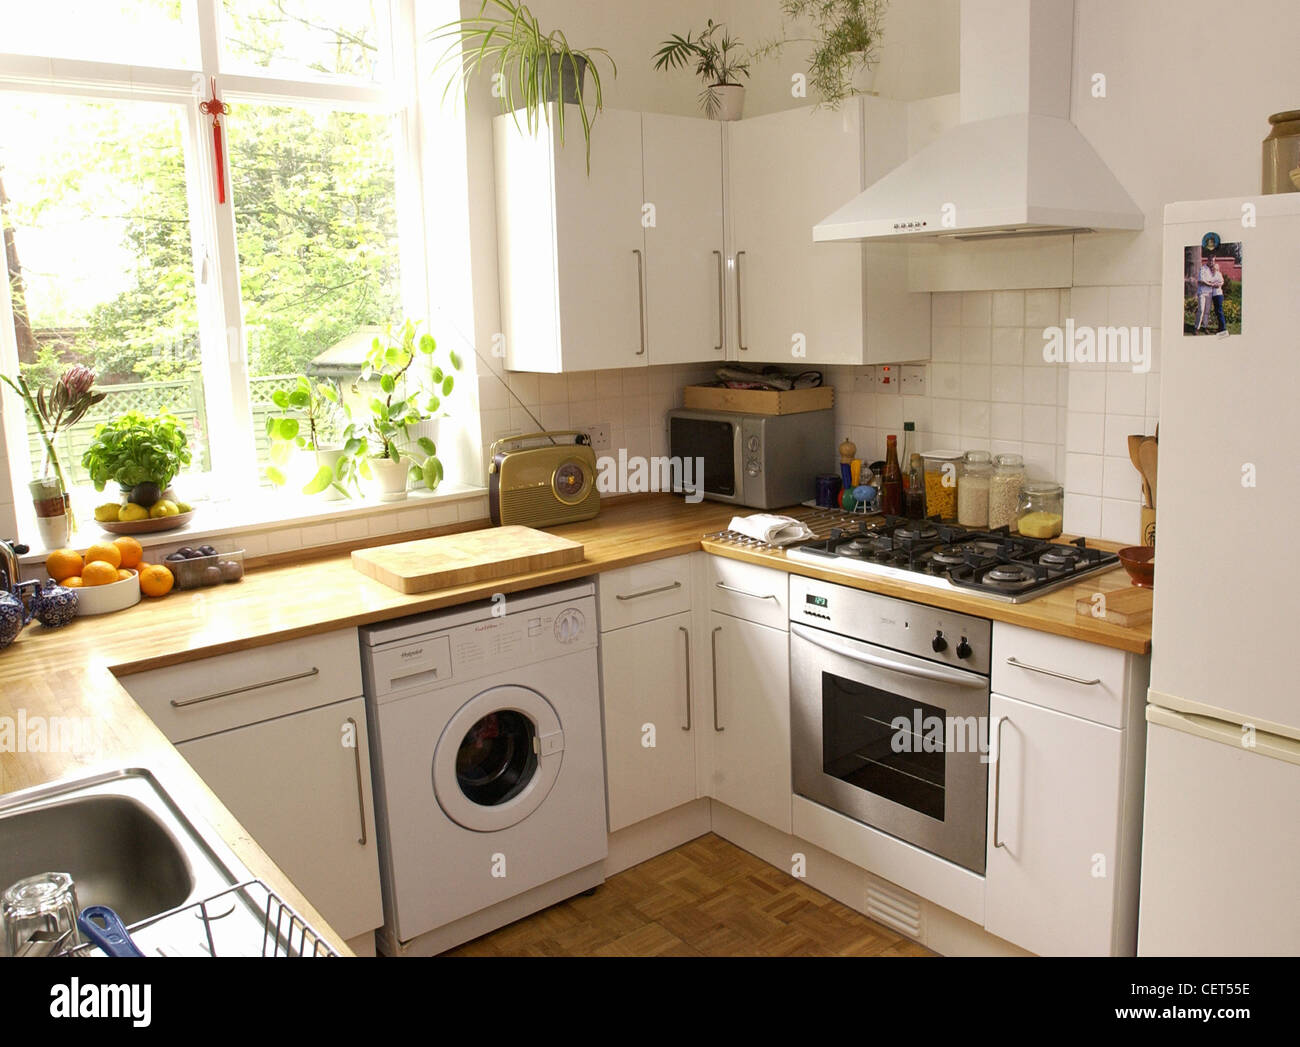 Renovated Flat Interiimage Of A U Shaped Kitchen White Tiled Walls, Wood  Worktops, Stailess Steel Oven And Sink, Five Gas